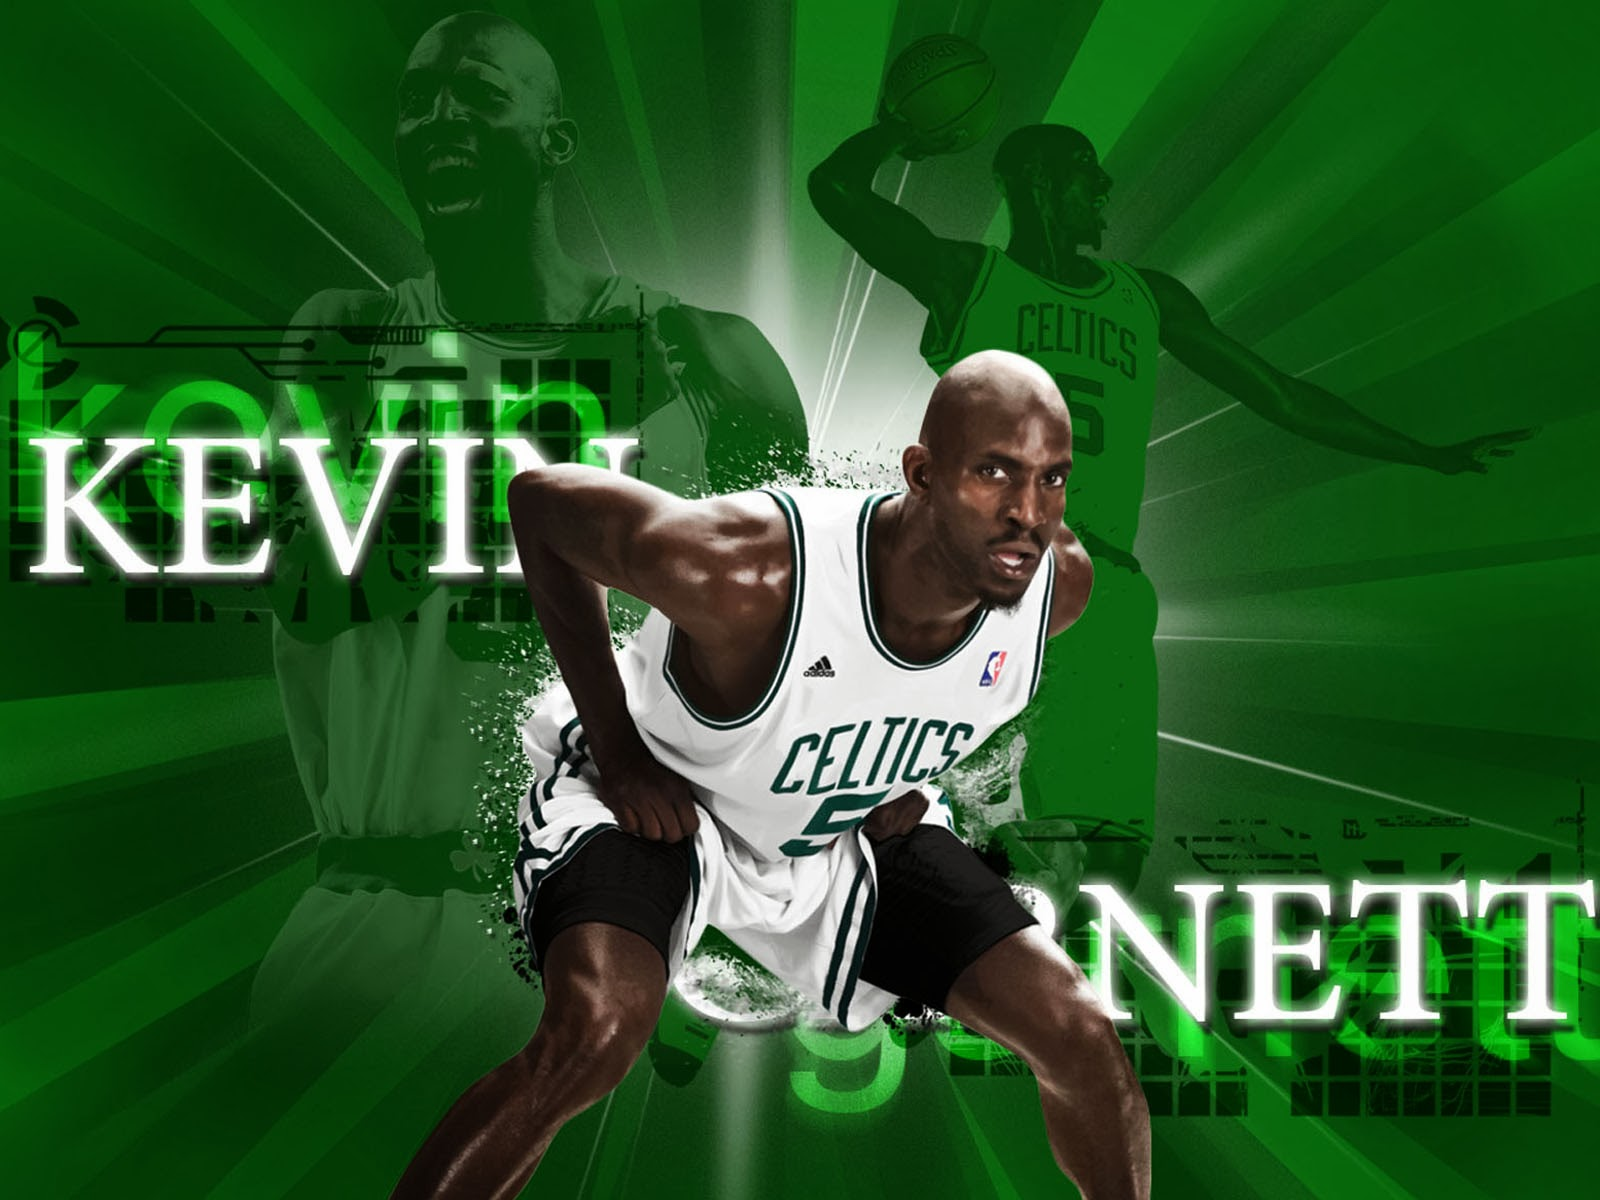 wallpapers Kevin Garnett Wallpapers 1600x1200